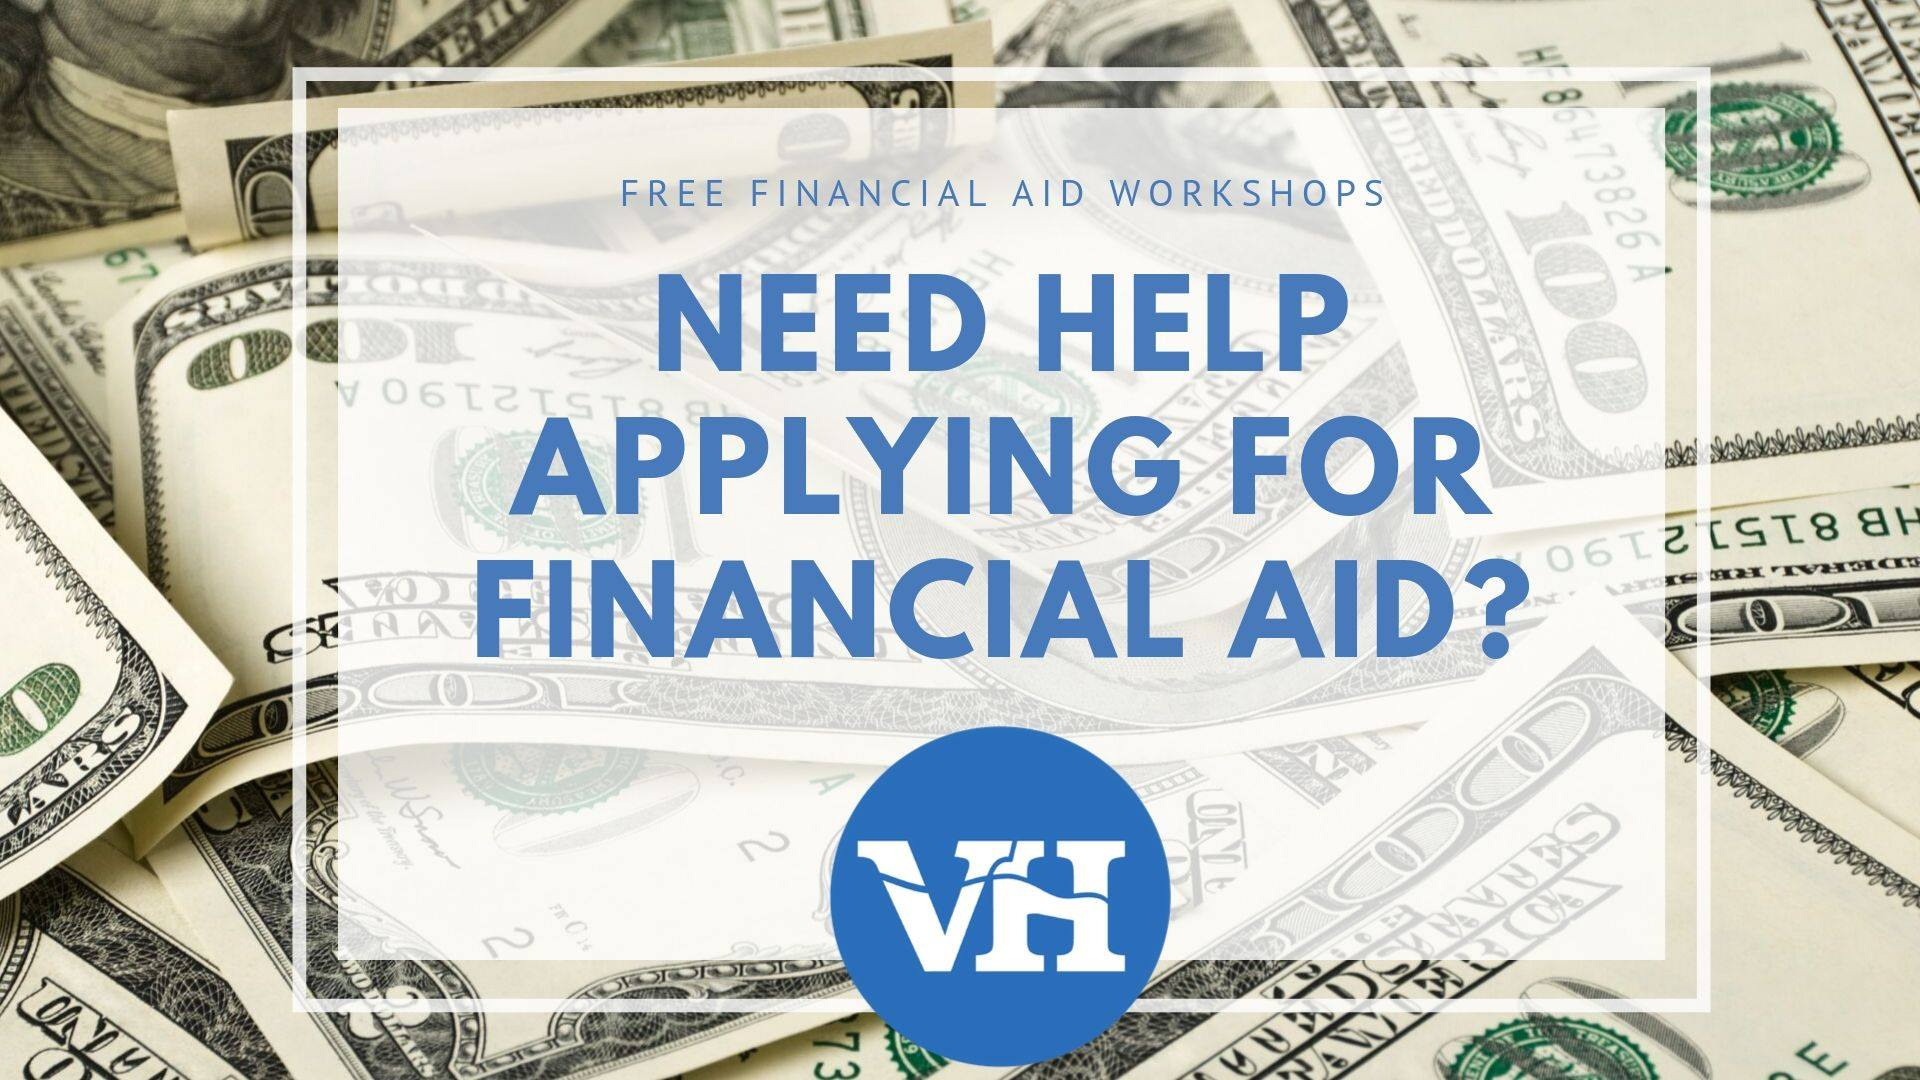 Free Financial Aid Workshops! Need help applying for financial aid?